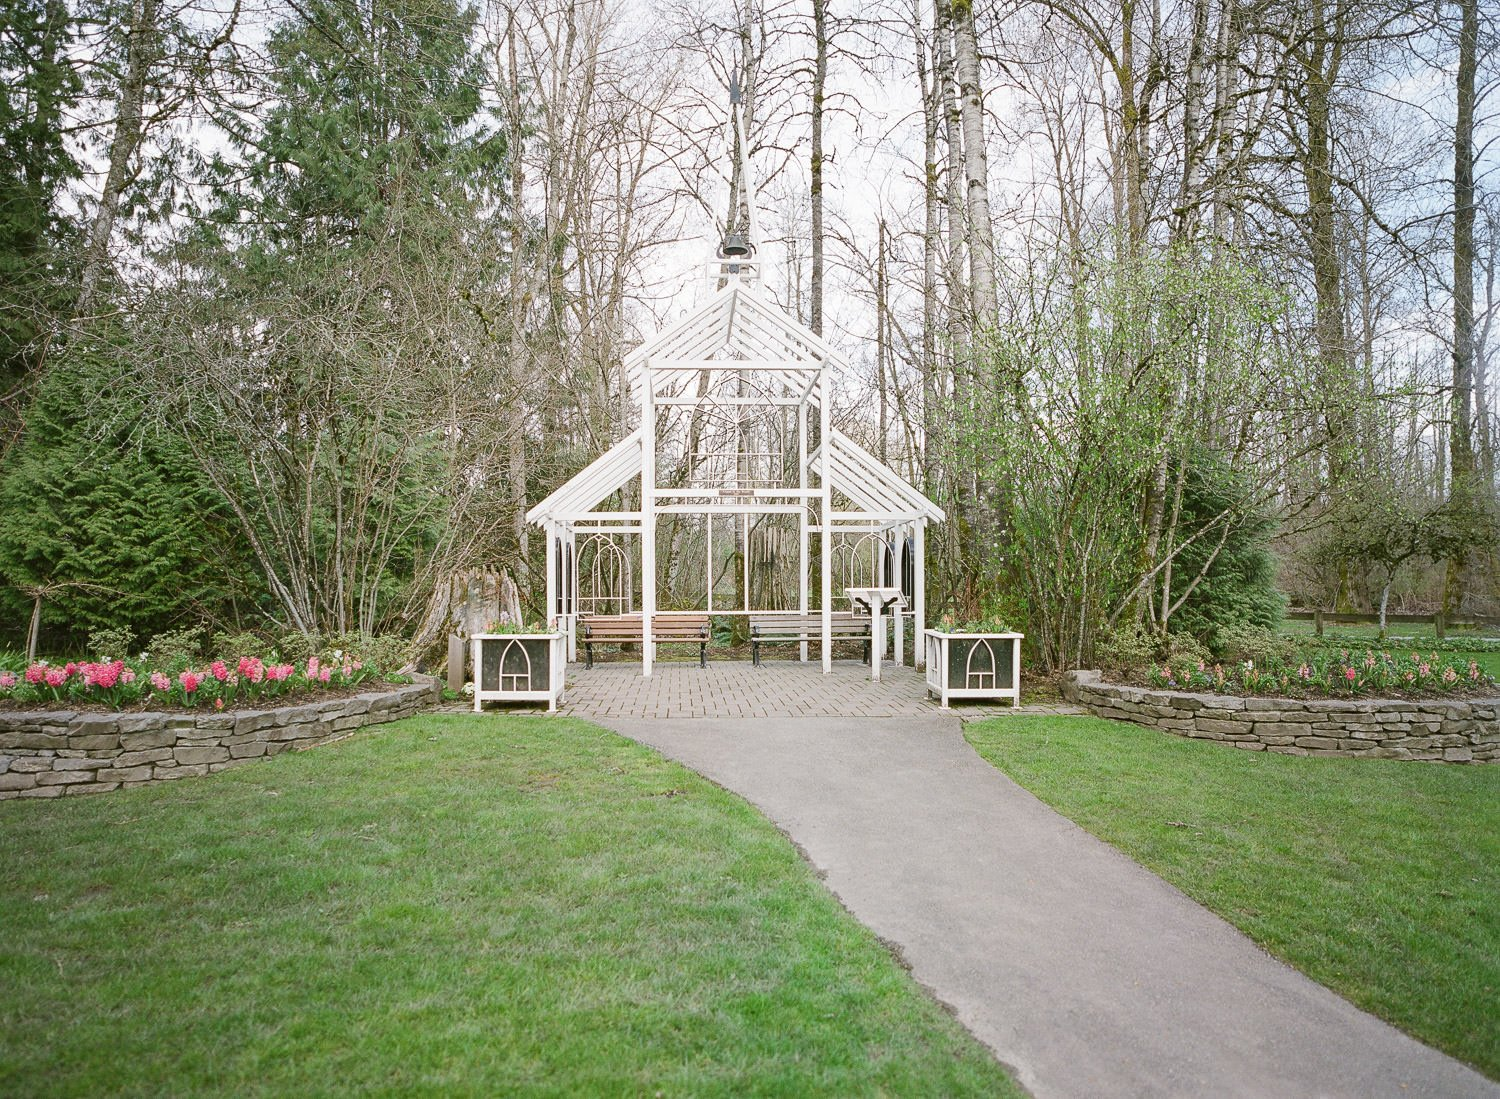 Bear creek park gazebo